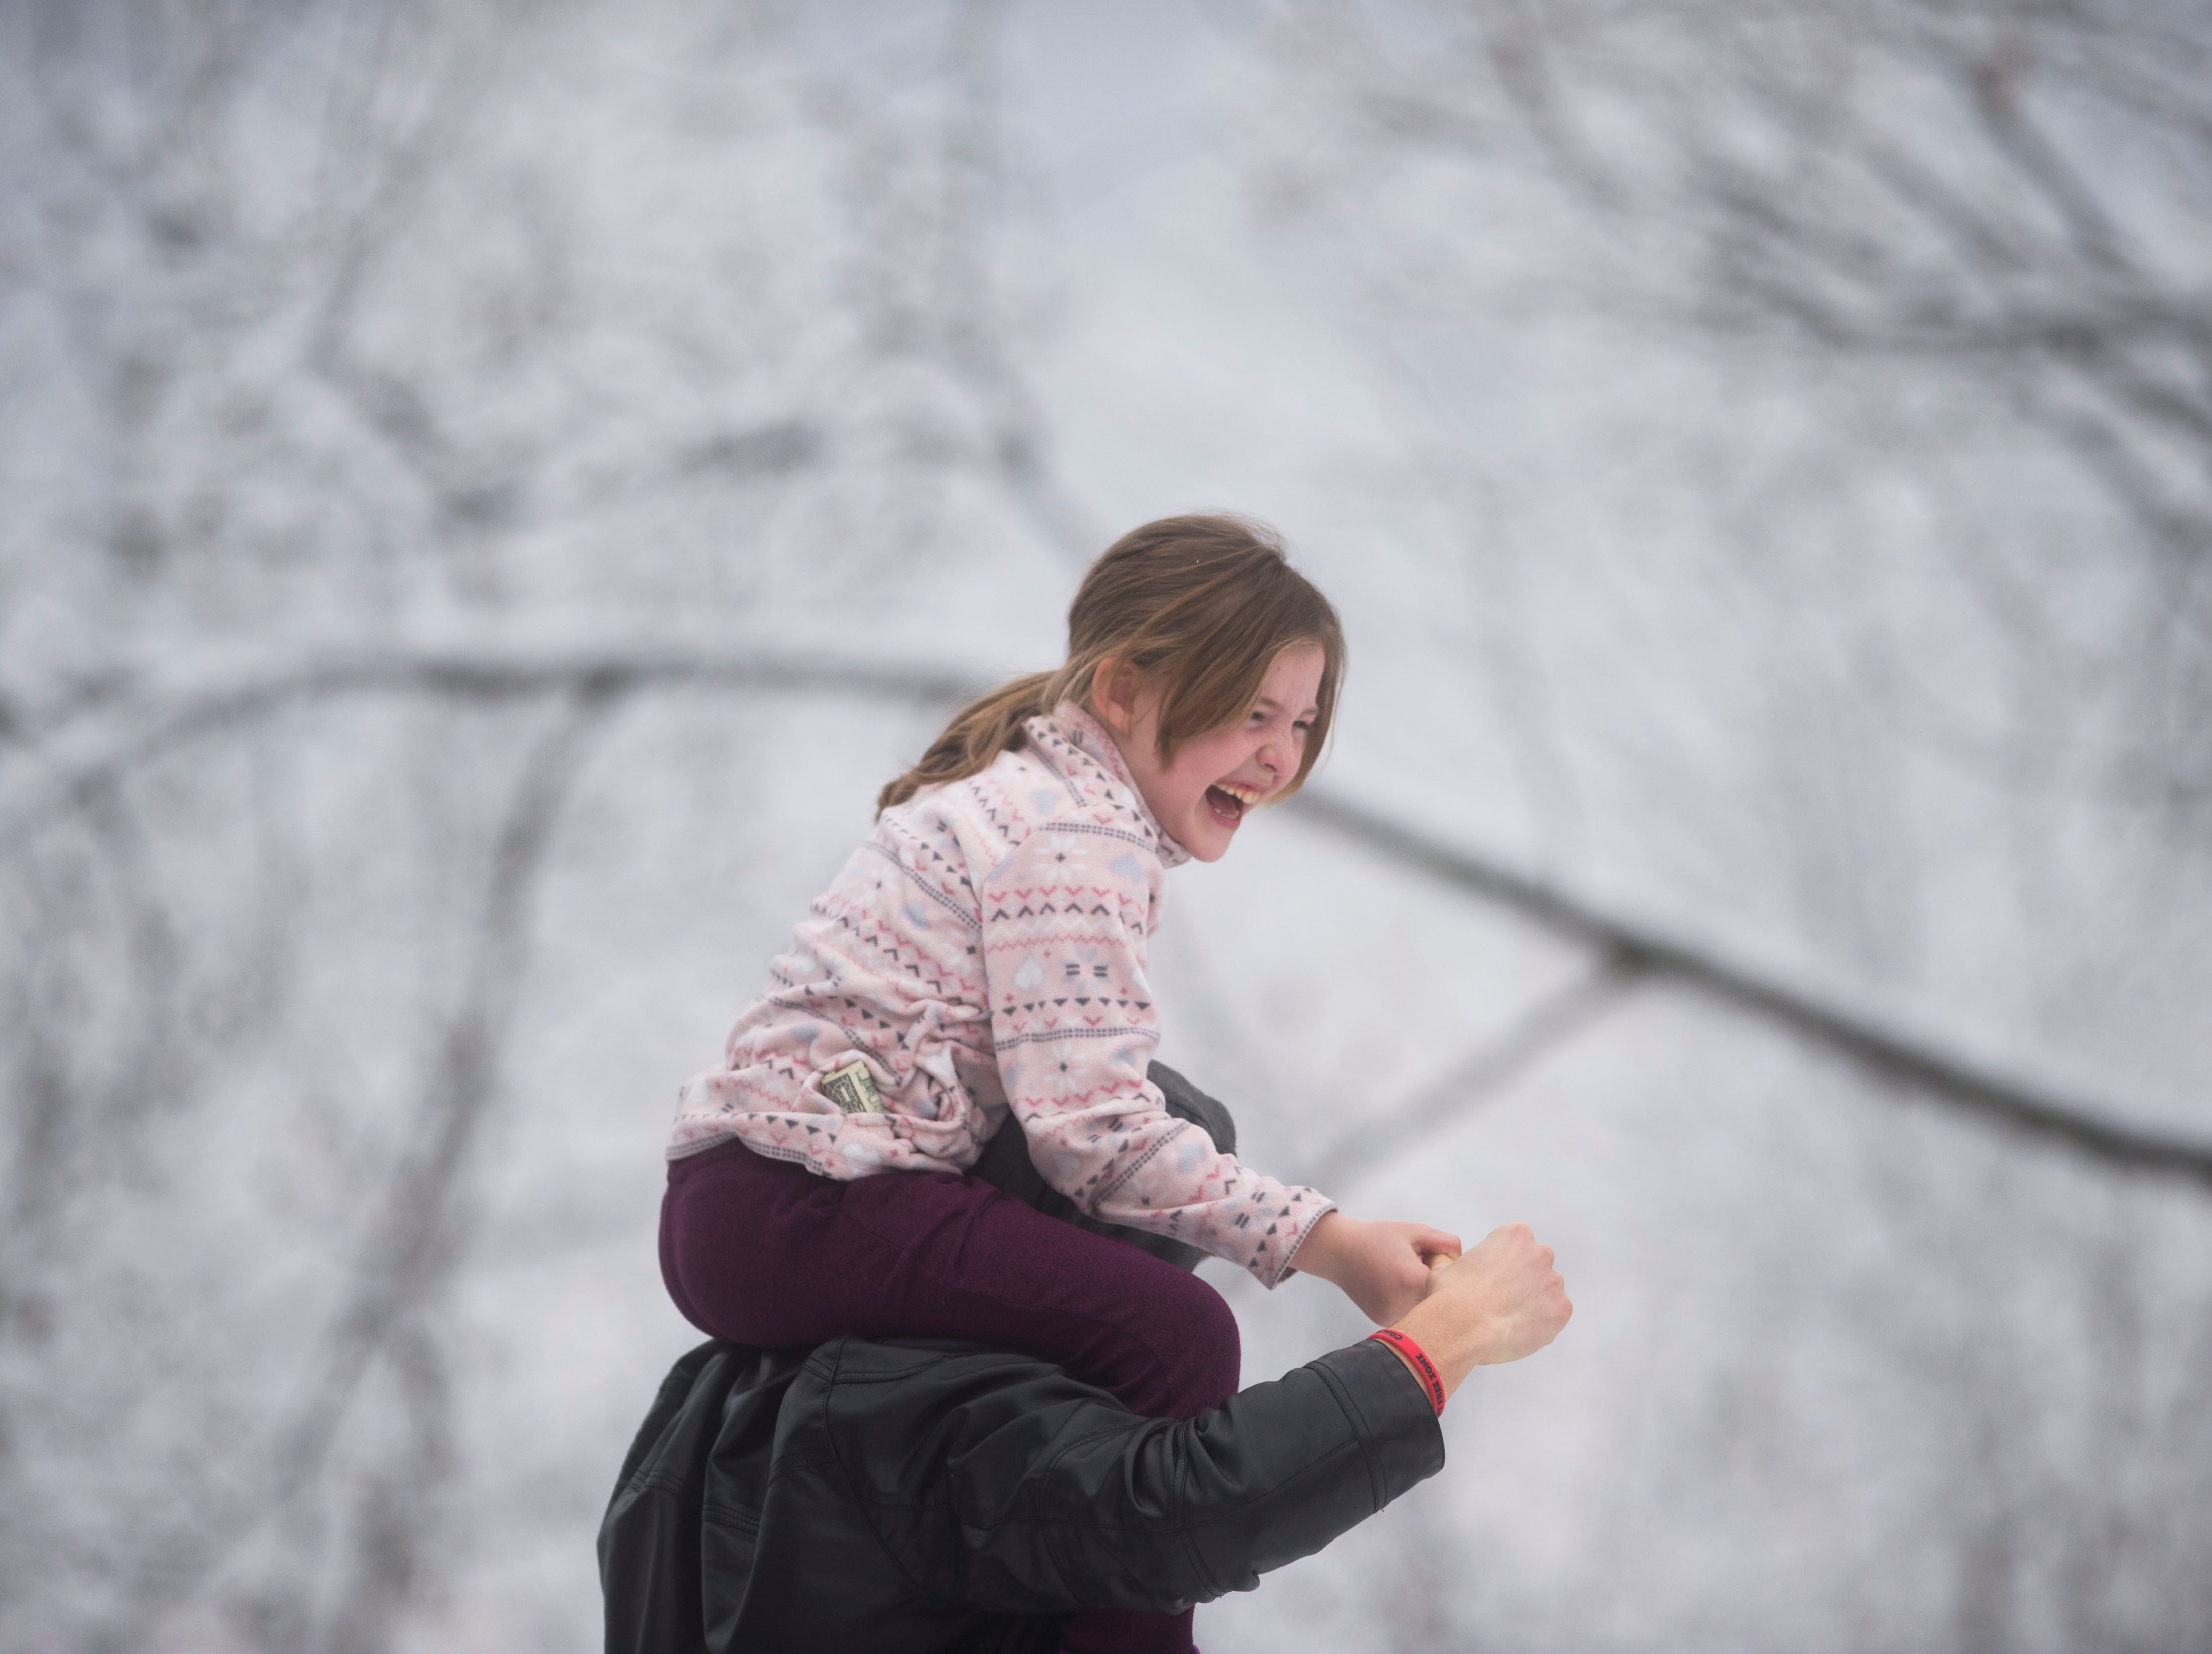 Leeland Robbins, 8, of Knoxville, sits on Clay Rhea's shoulders, on top of Sharps Ridge in North Knoxville Tuesday, Jan 29, 2019. The Knoxville area received about an inch of snow.